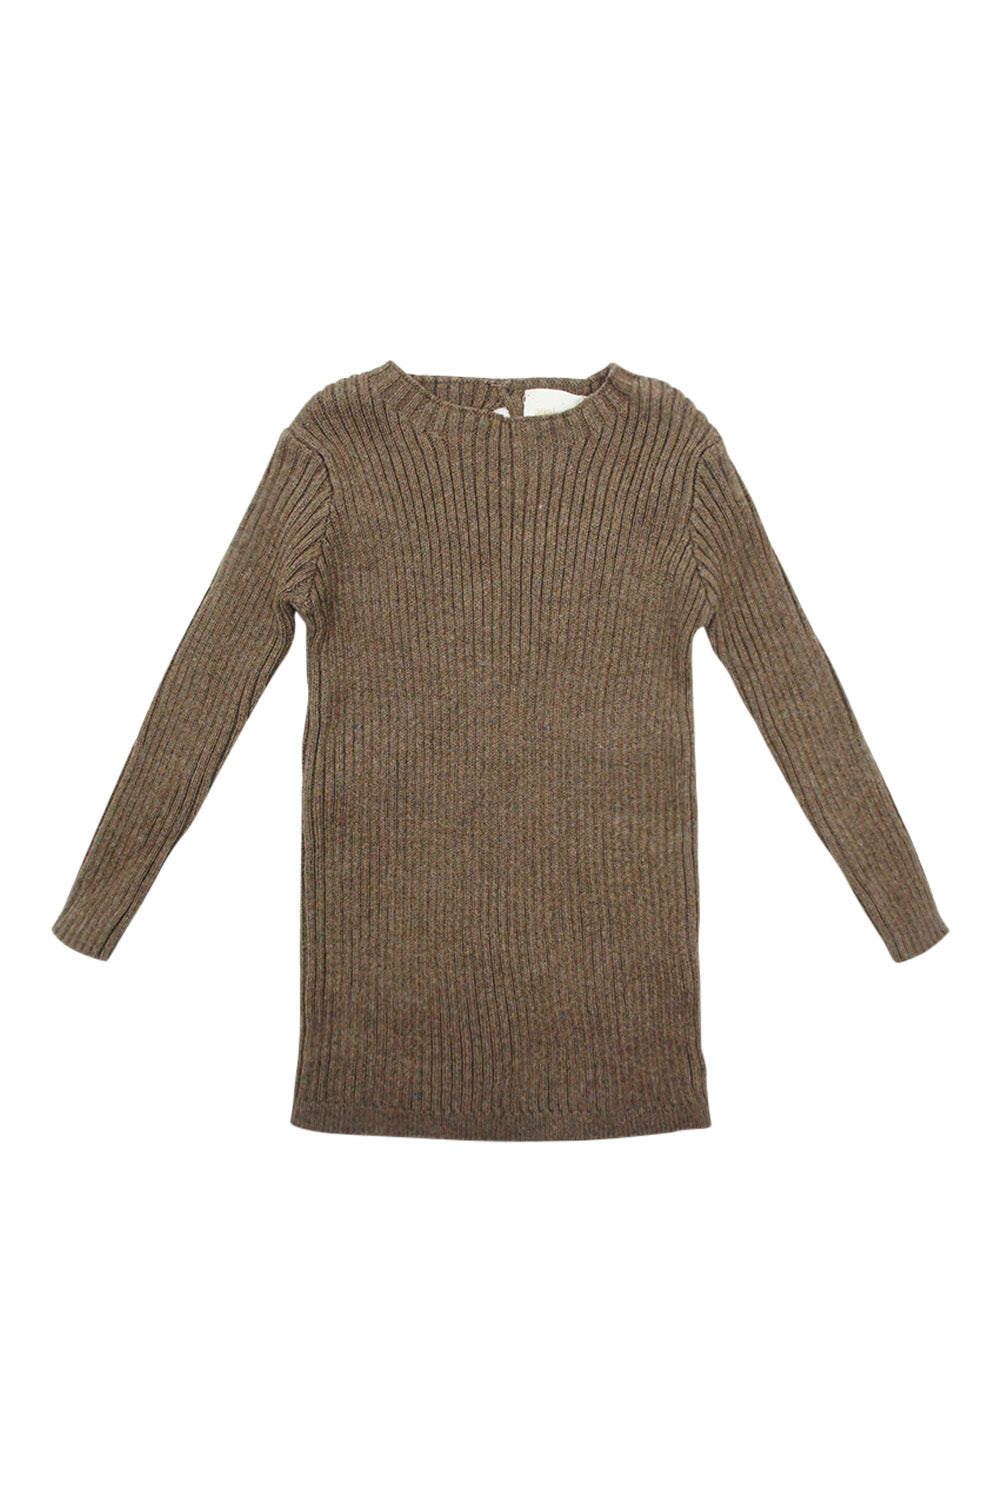 Analogie Dark Walnut Long Sleeve Knit Sweater